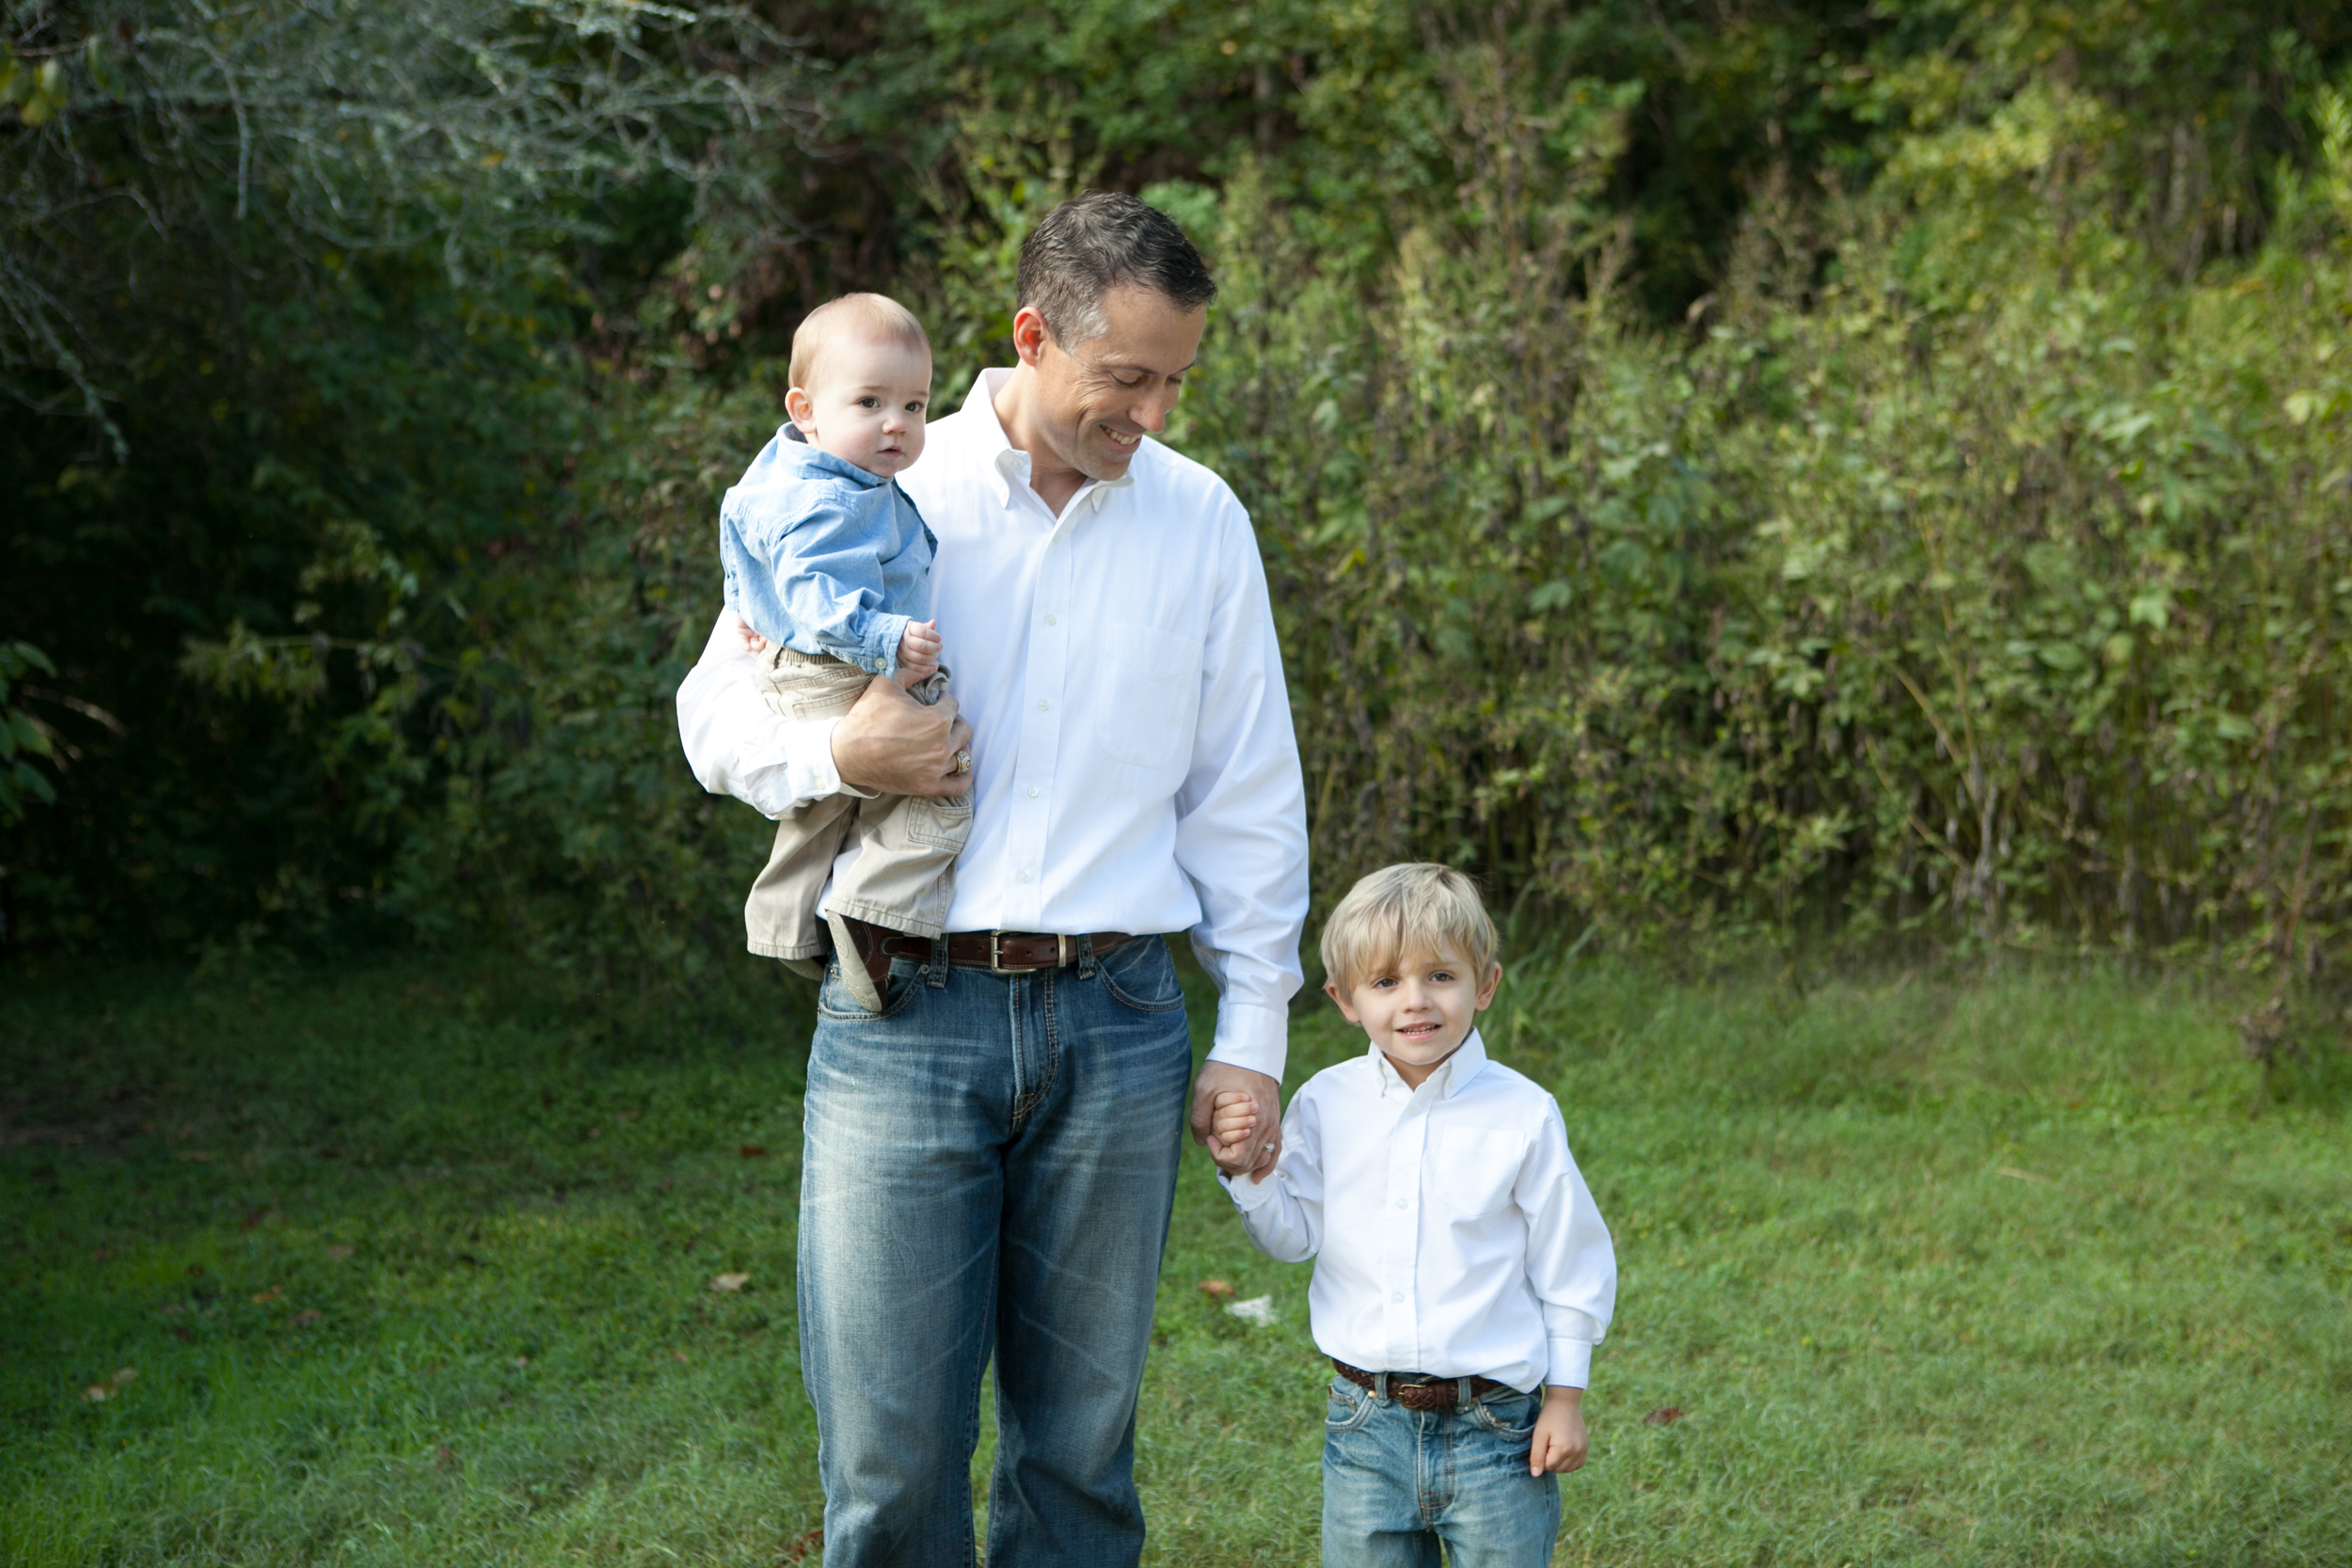 kate stafford photography | family